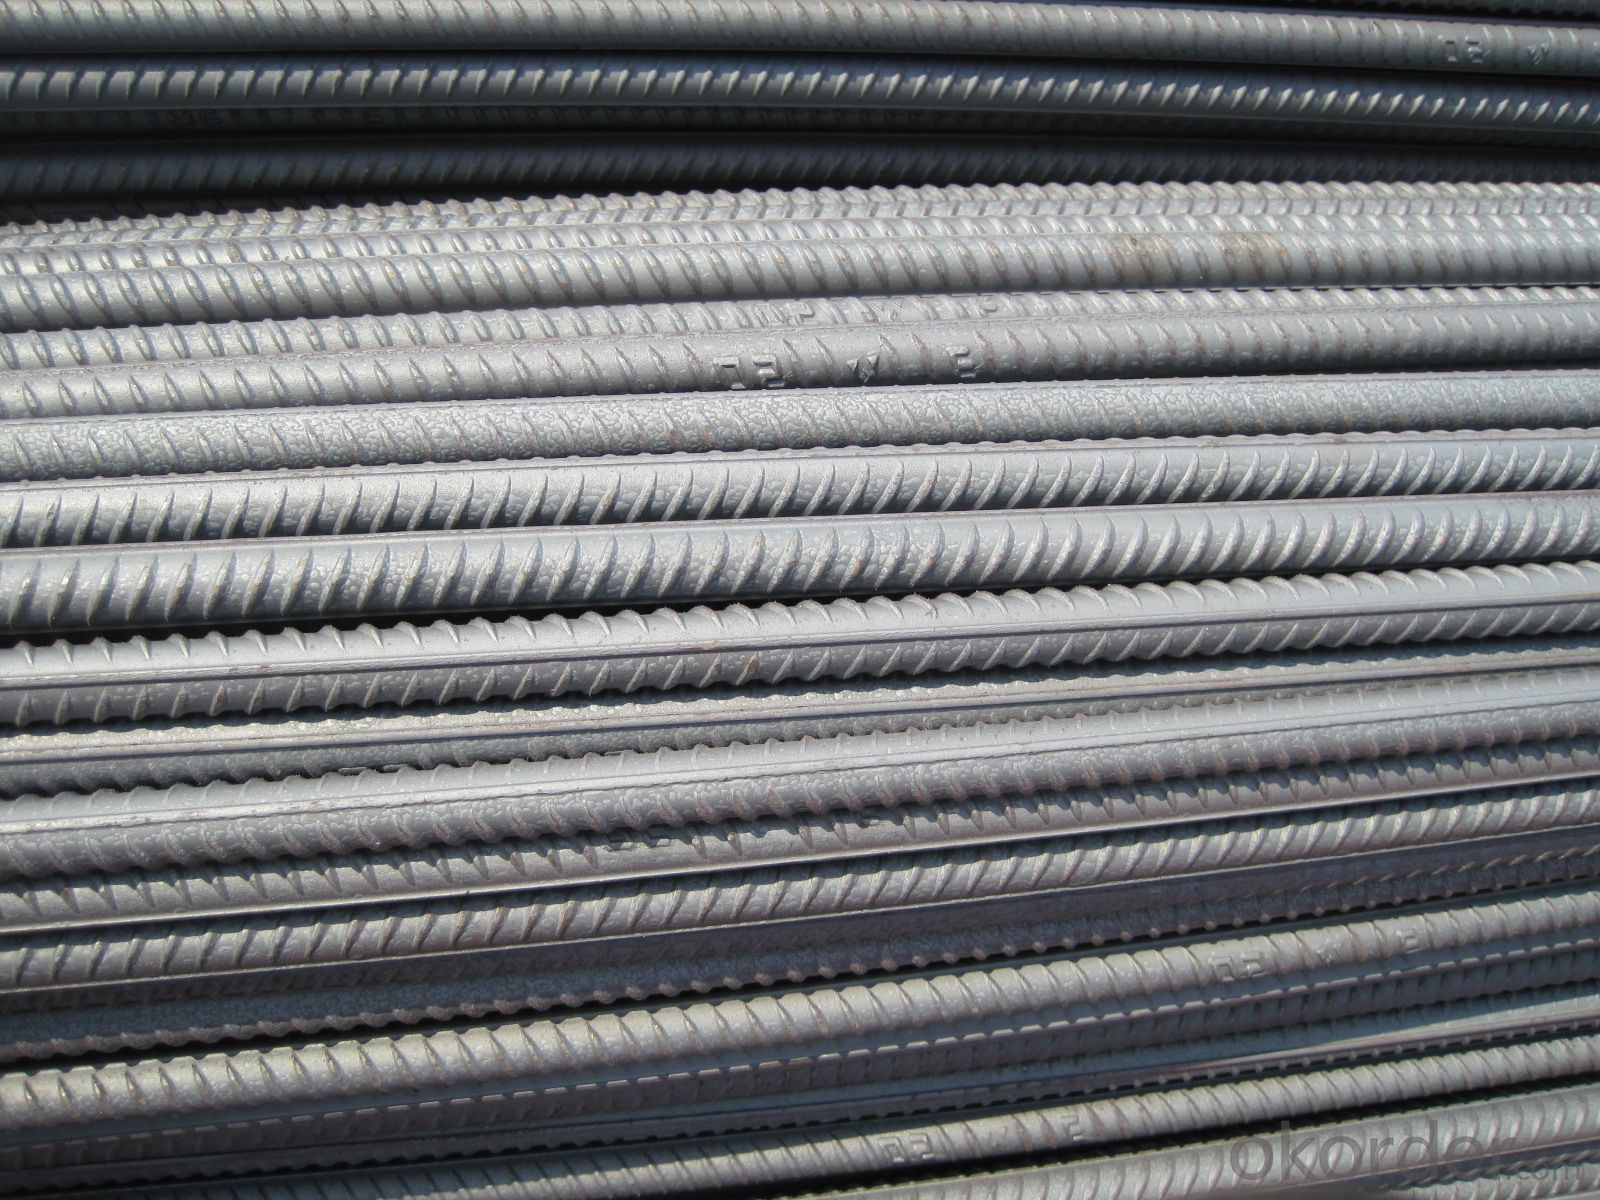 High Quality Steel Deformed Bar HRB400 25/28/32mm